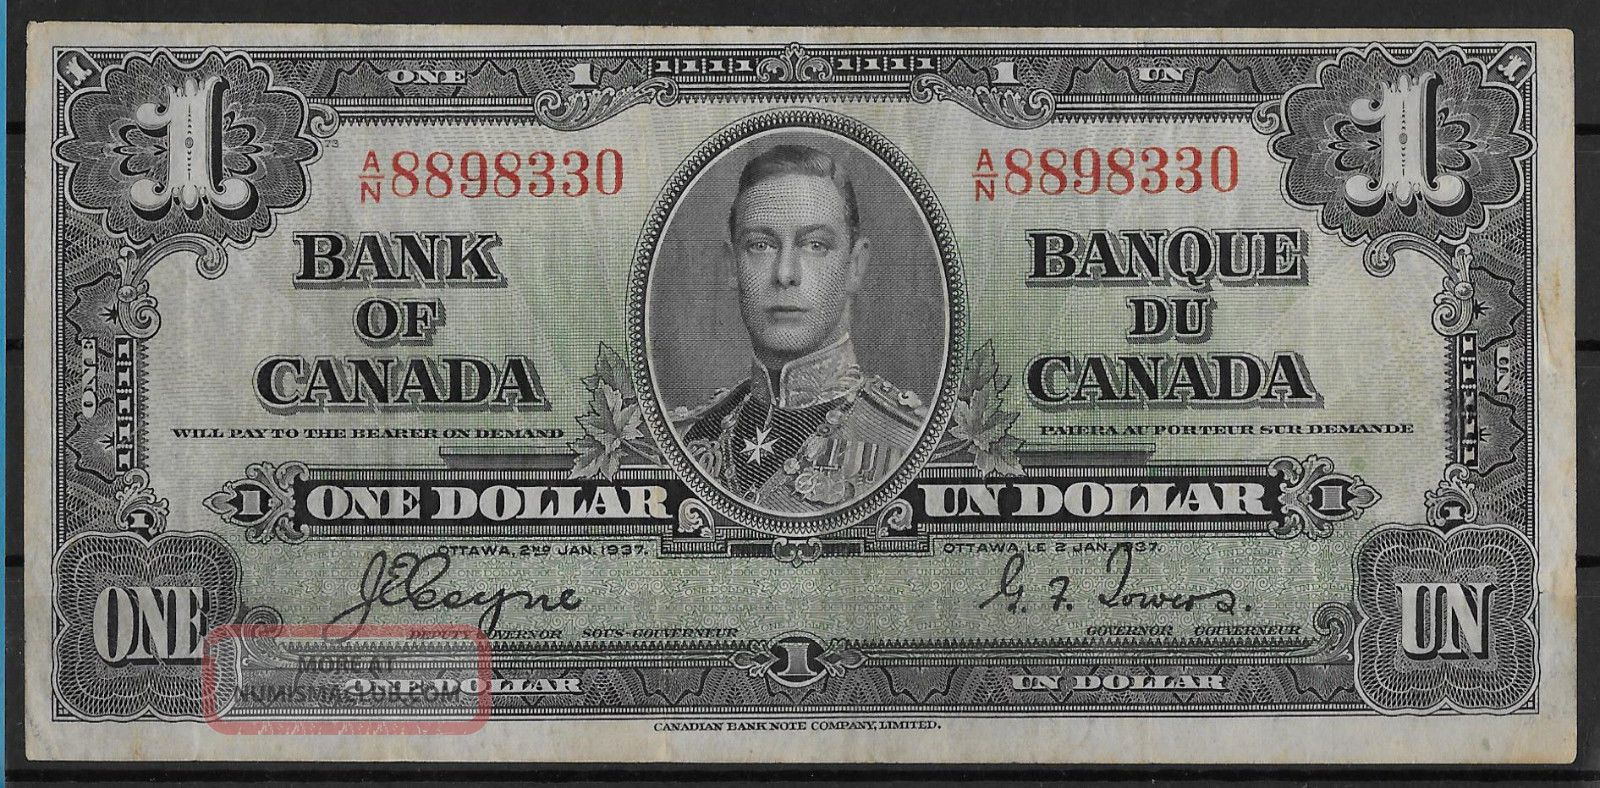 , 1937 Canada King George Vi $1.  00 Bill Bank Note Currency English & French Text Canada photo